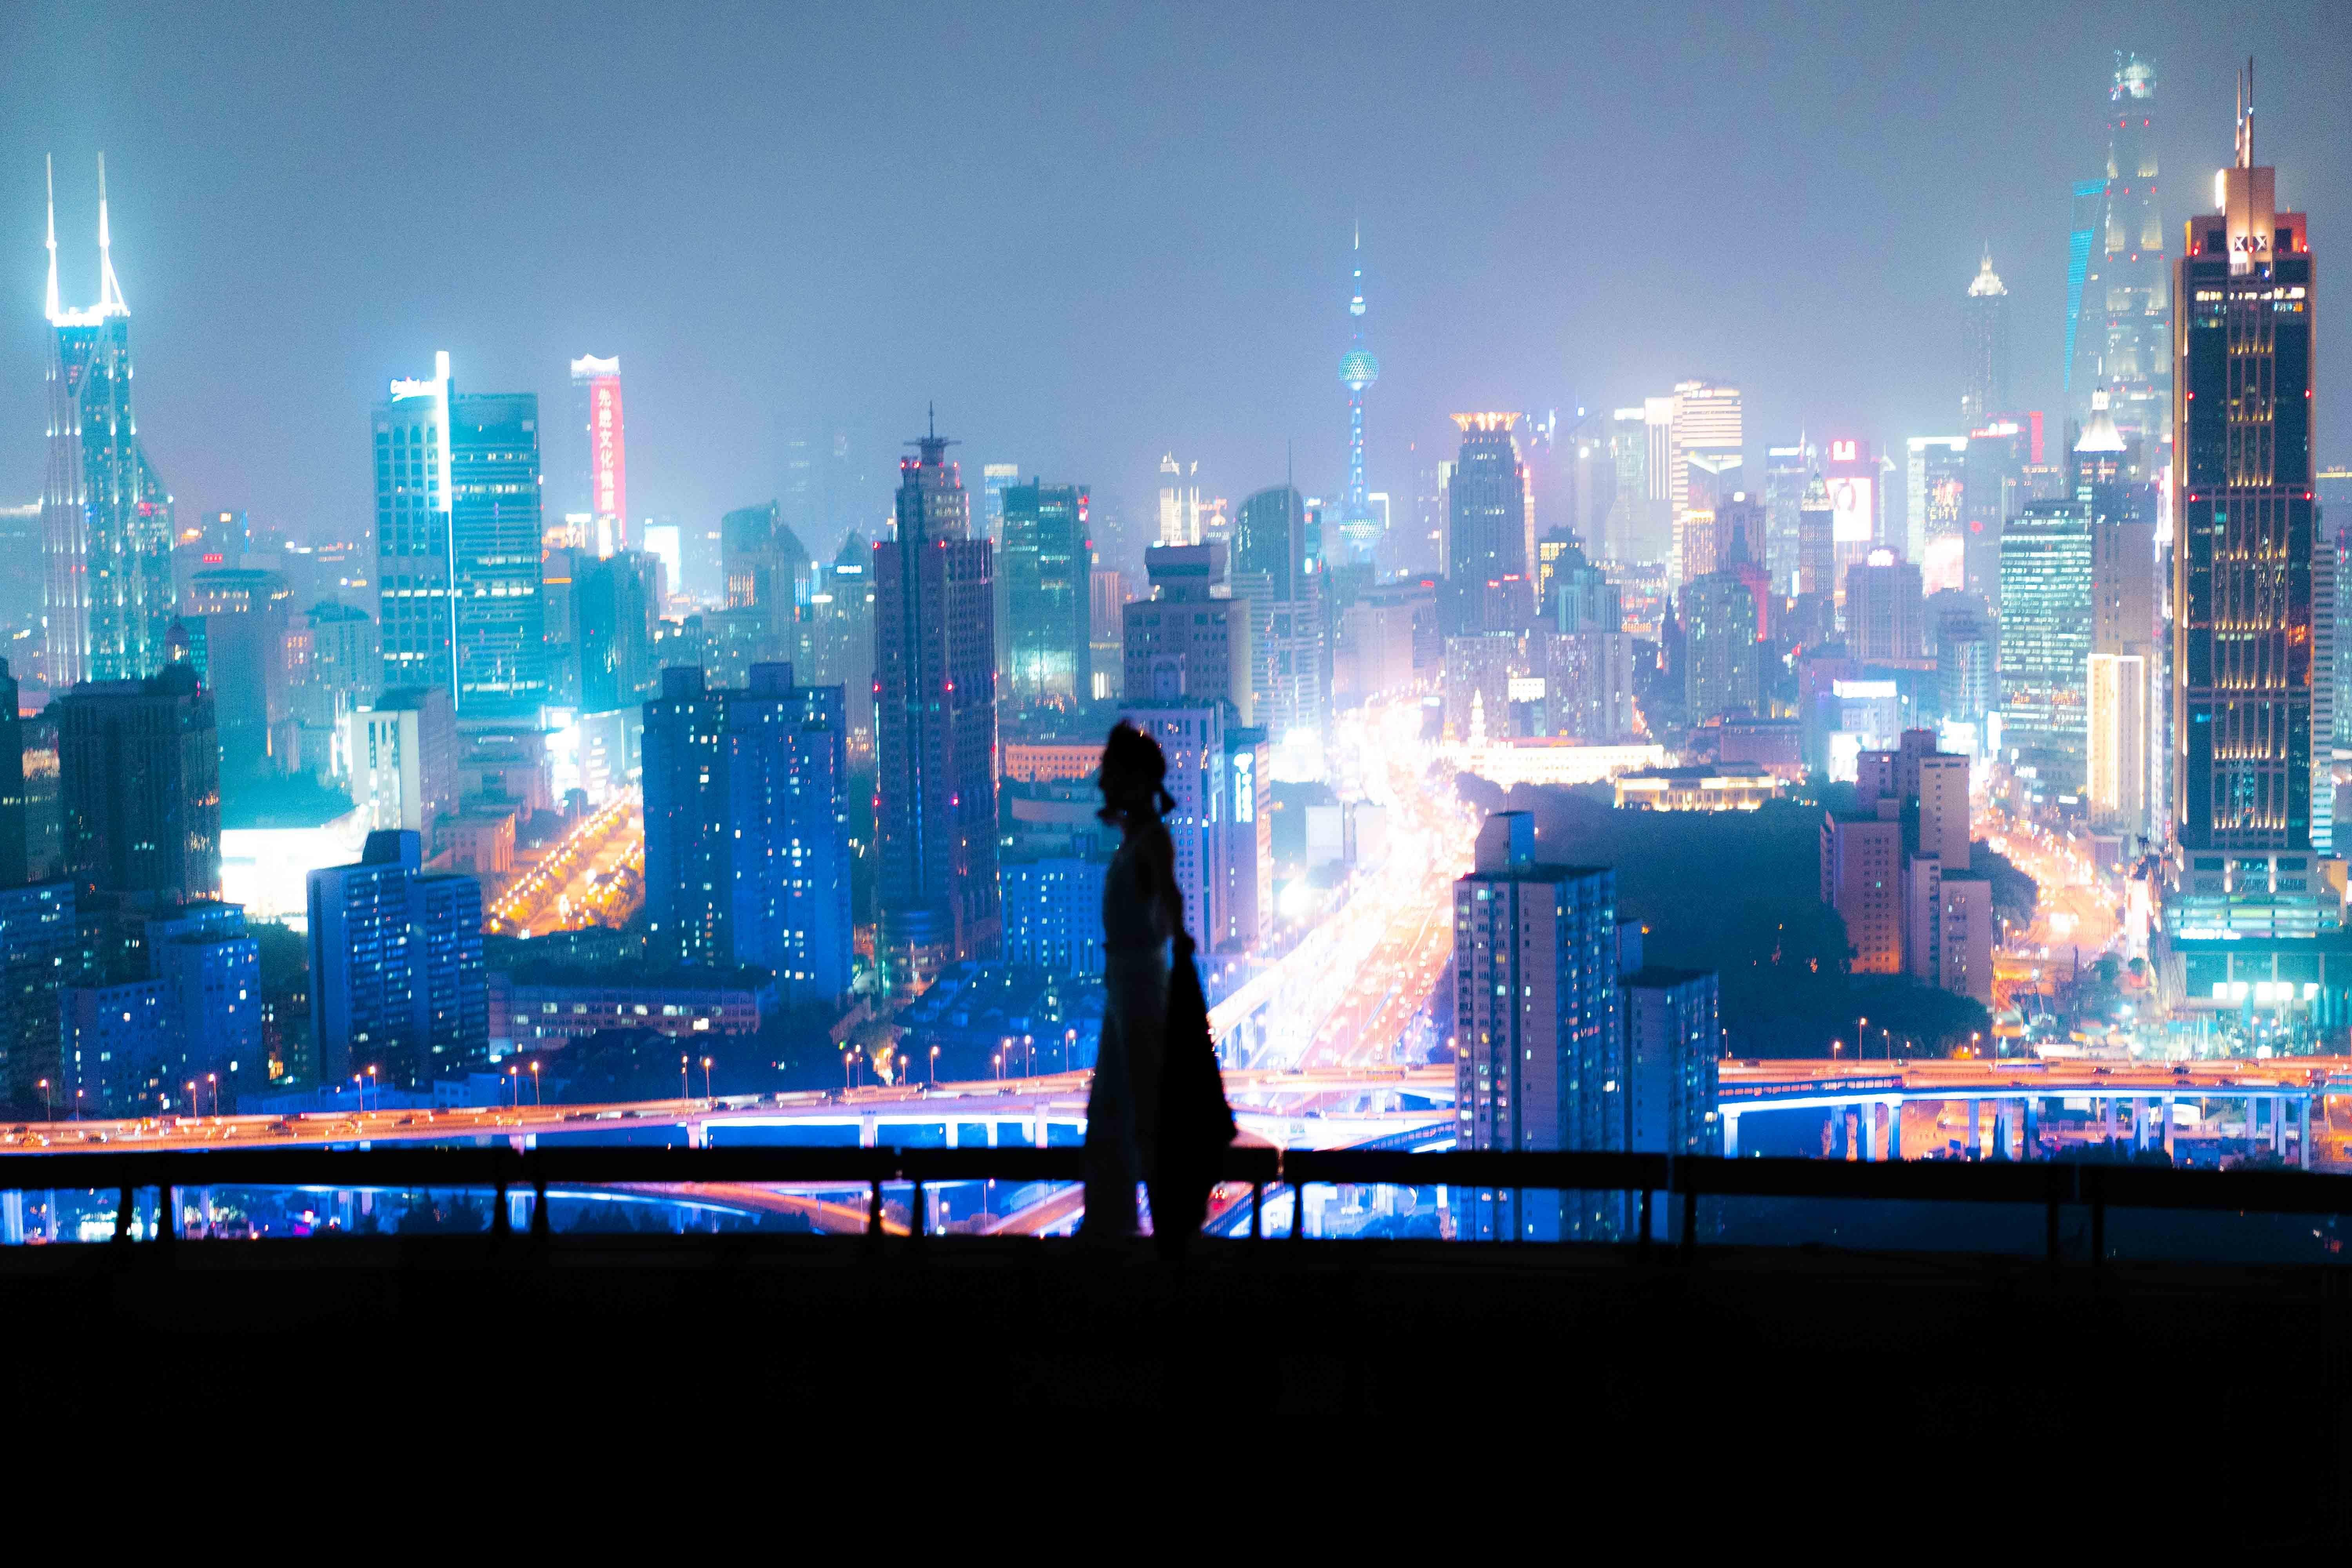 Shanghai Wallpapers 4k For Your Phone And Desktop Screen